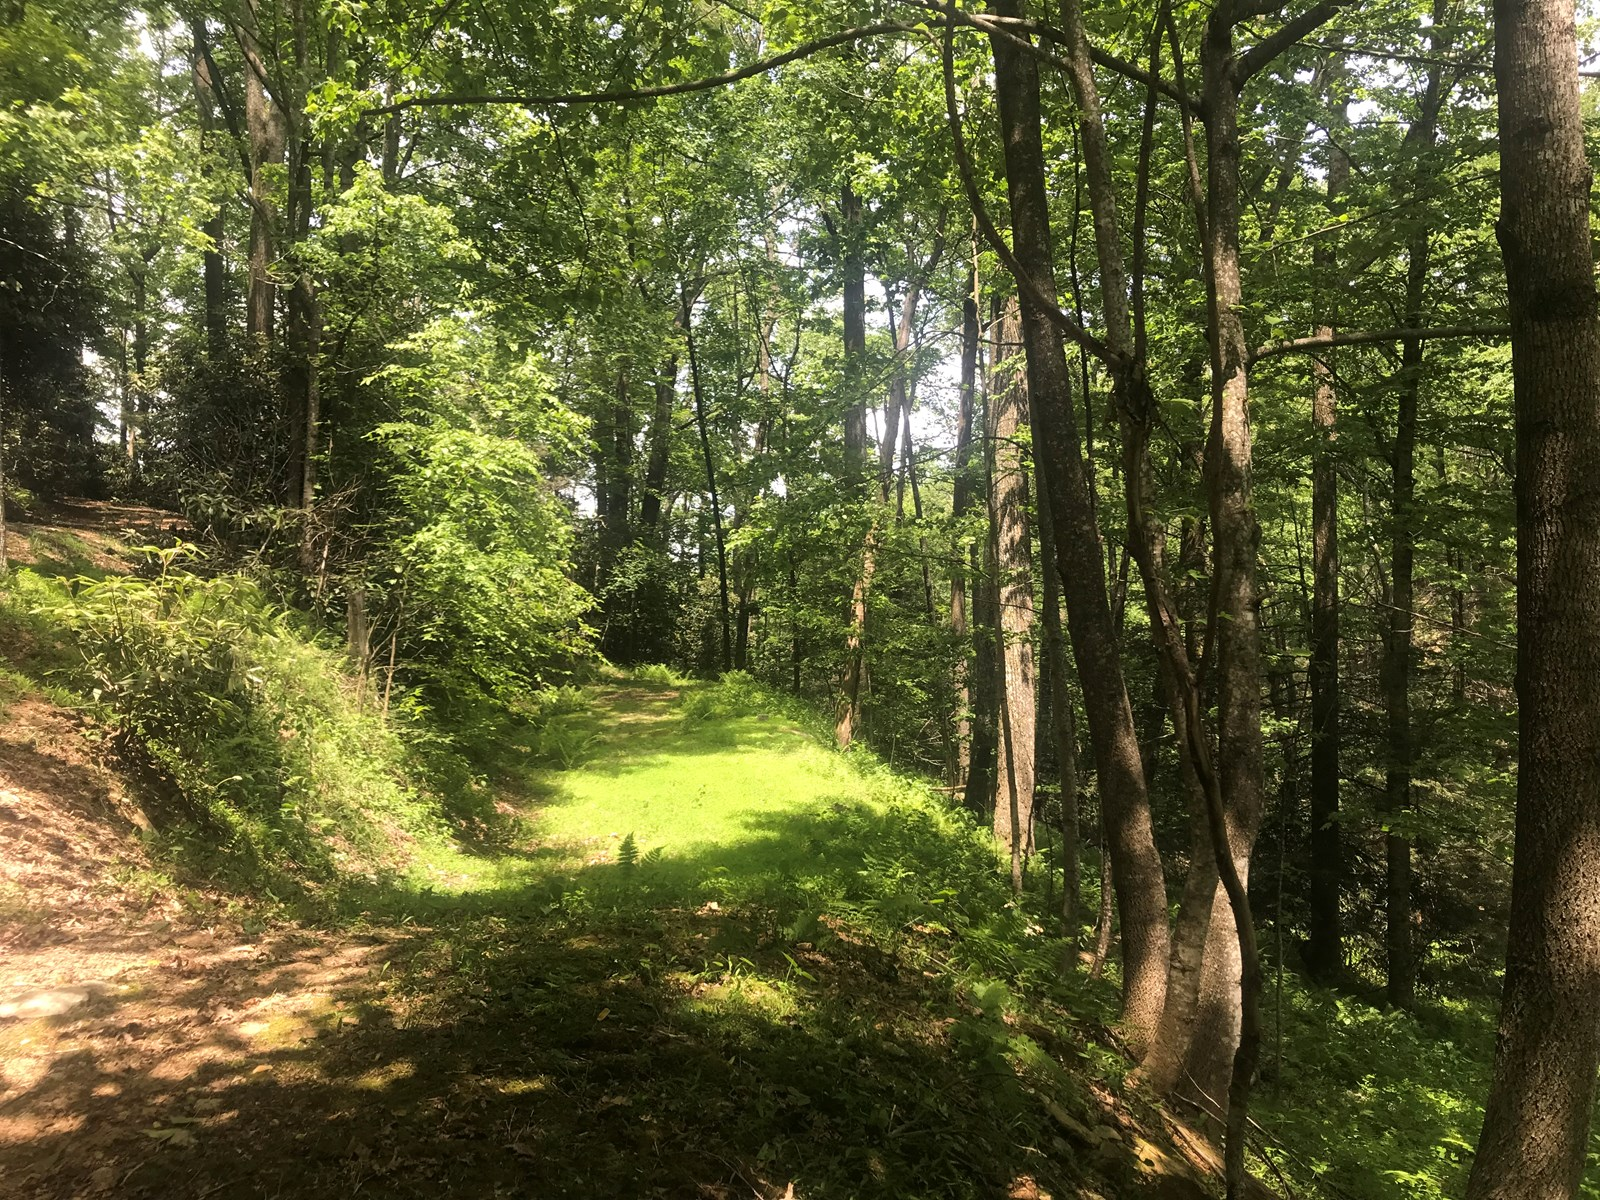 Building Lot for Sale near Blue Ridge Parkway